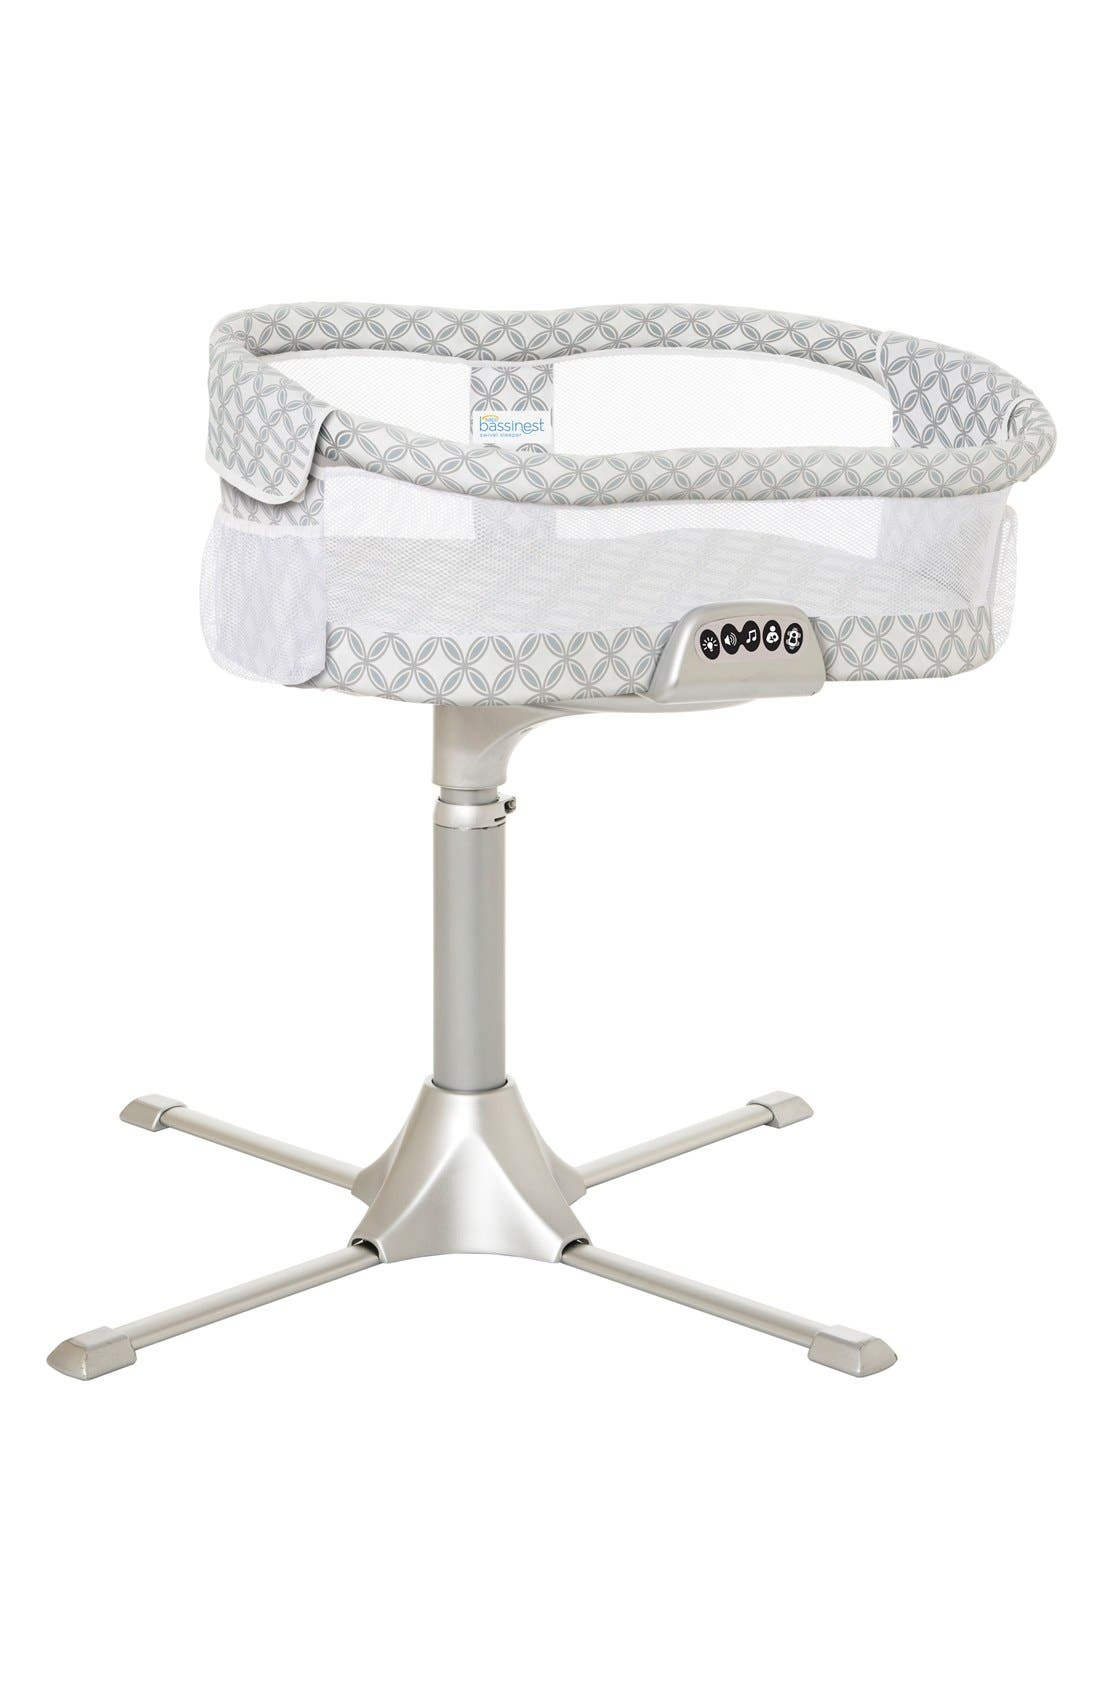 Halo Innovations 'Bassinest' Bedside Swivel Sleeper (Baby)